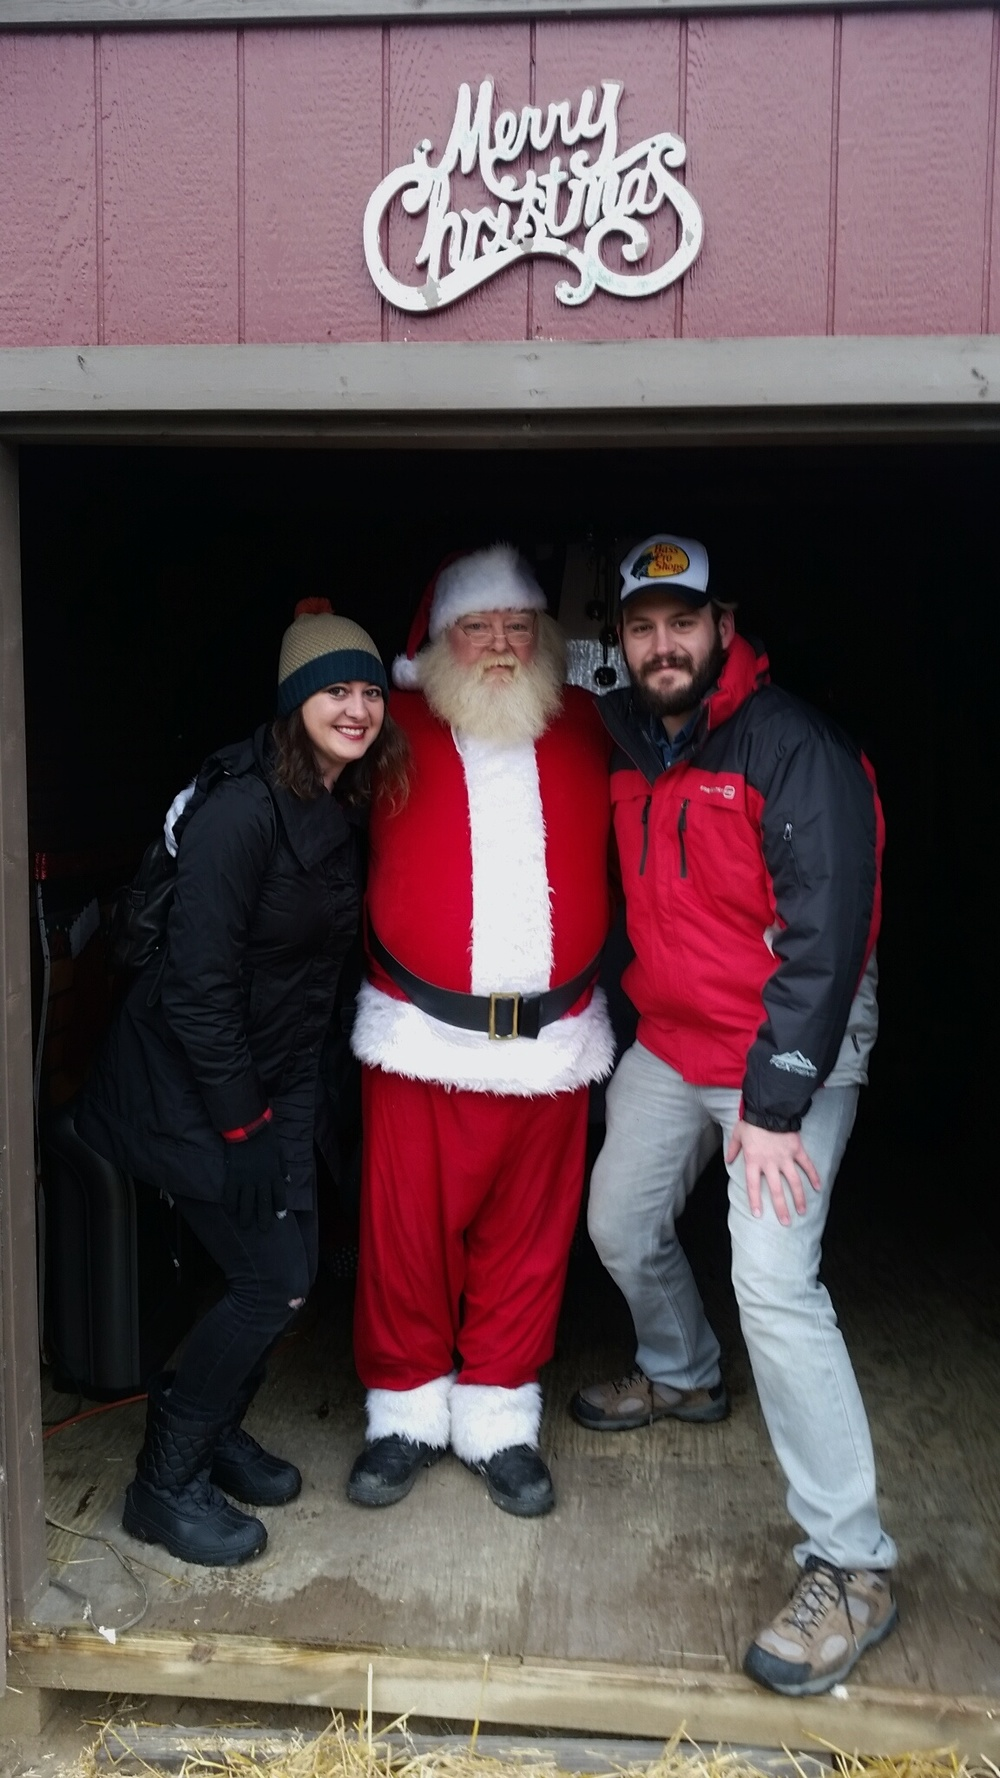 Our picture with Santa